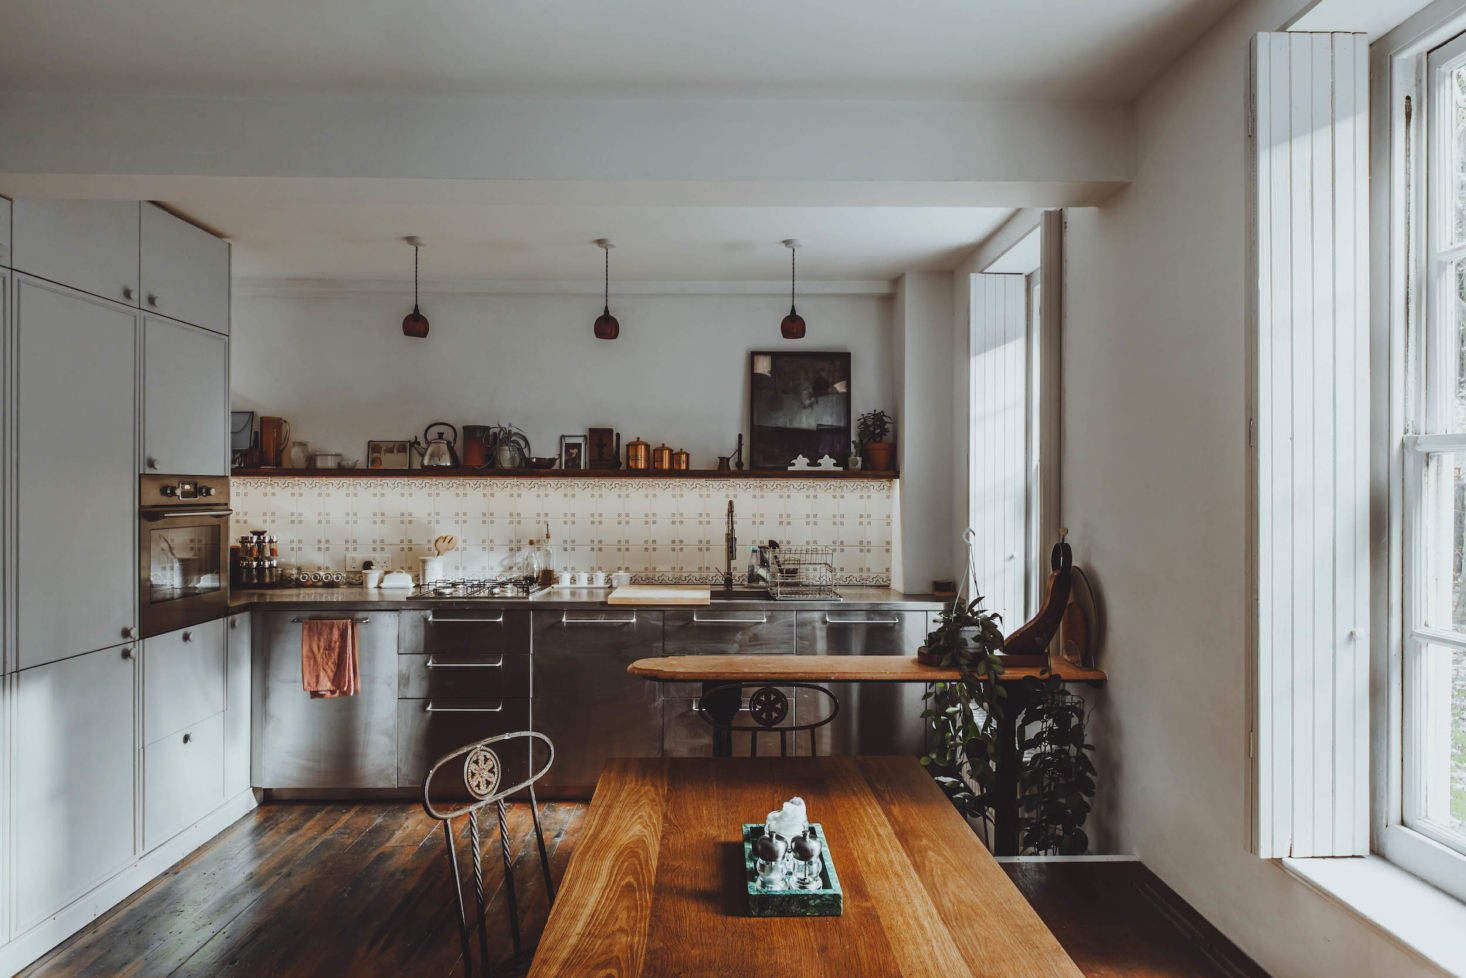 All Things Should Have Stories: A Richly Hued London Flat (With an Ikea Kitchen Too)